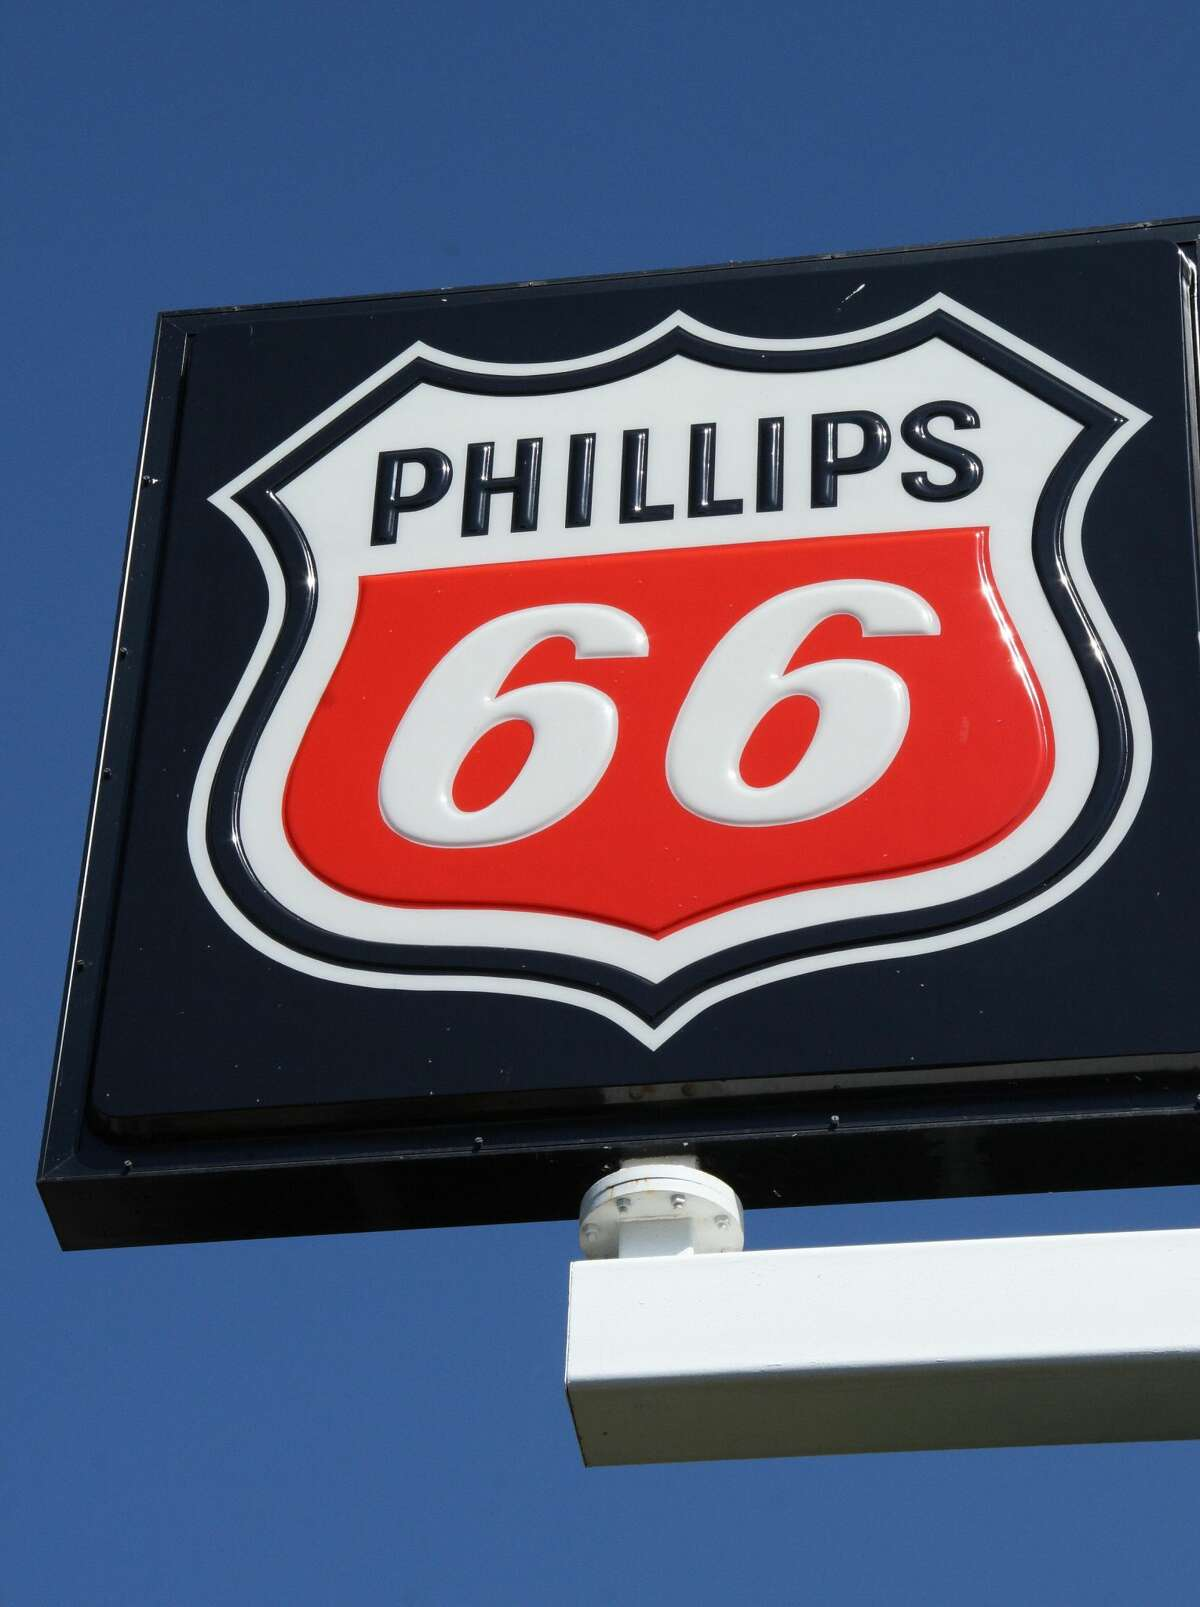 Phillips 66 and Chevron both made $100,000 contributions to GOP front groups in the 45th district election.